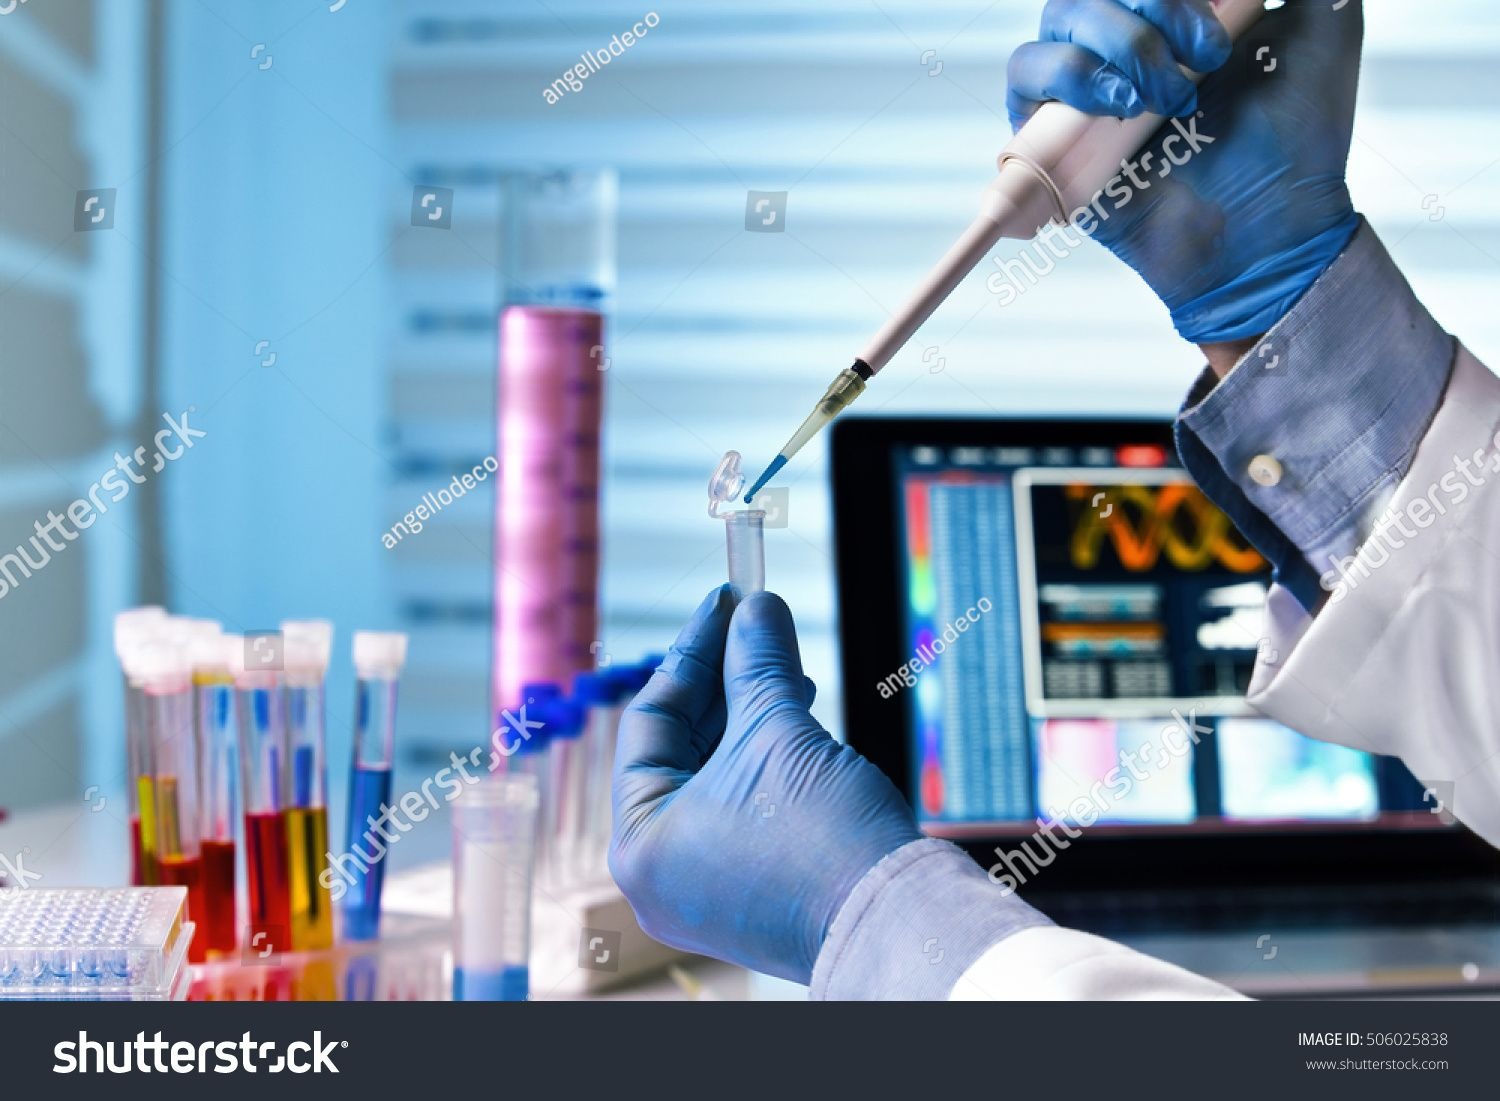 Scientist Holding Tube And Working With Laptop At Genetic Lab U002f Hands Of Engineer Genetic Working In Laborat Biomedical Chemical Engineering Homework Help [ 1101 x 1500 Pixel ]